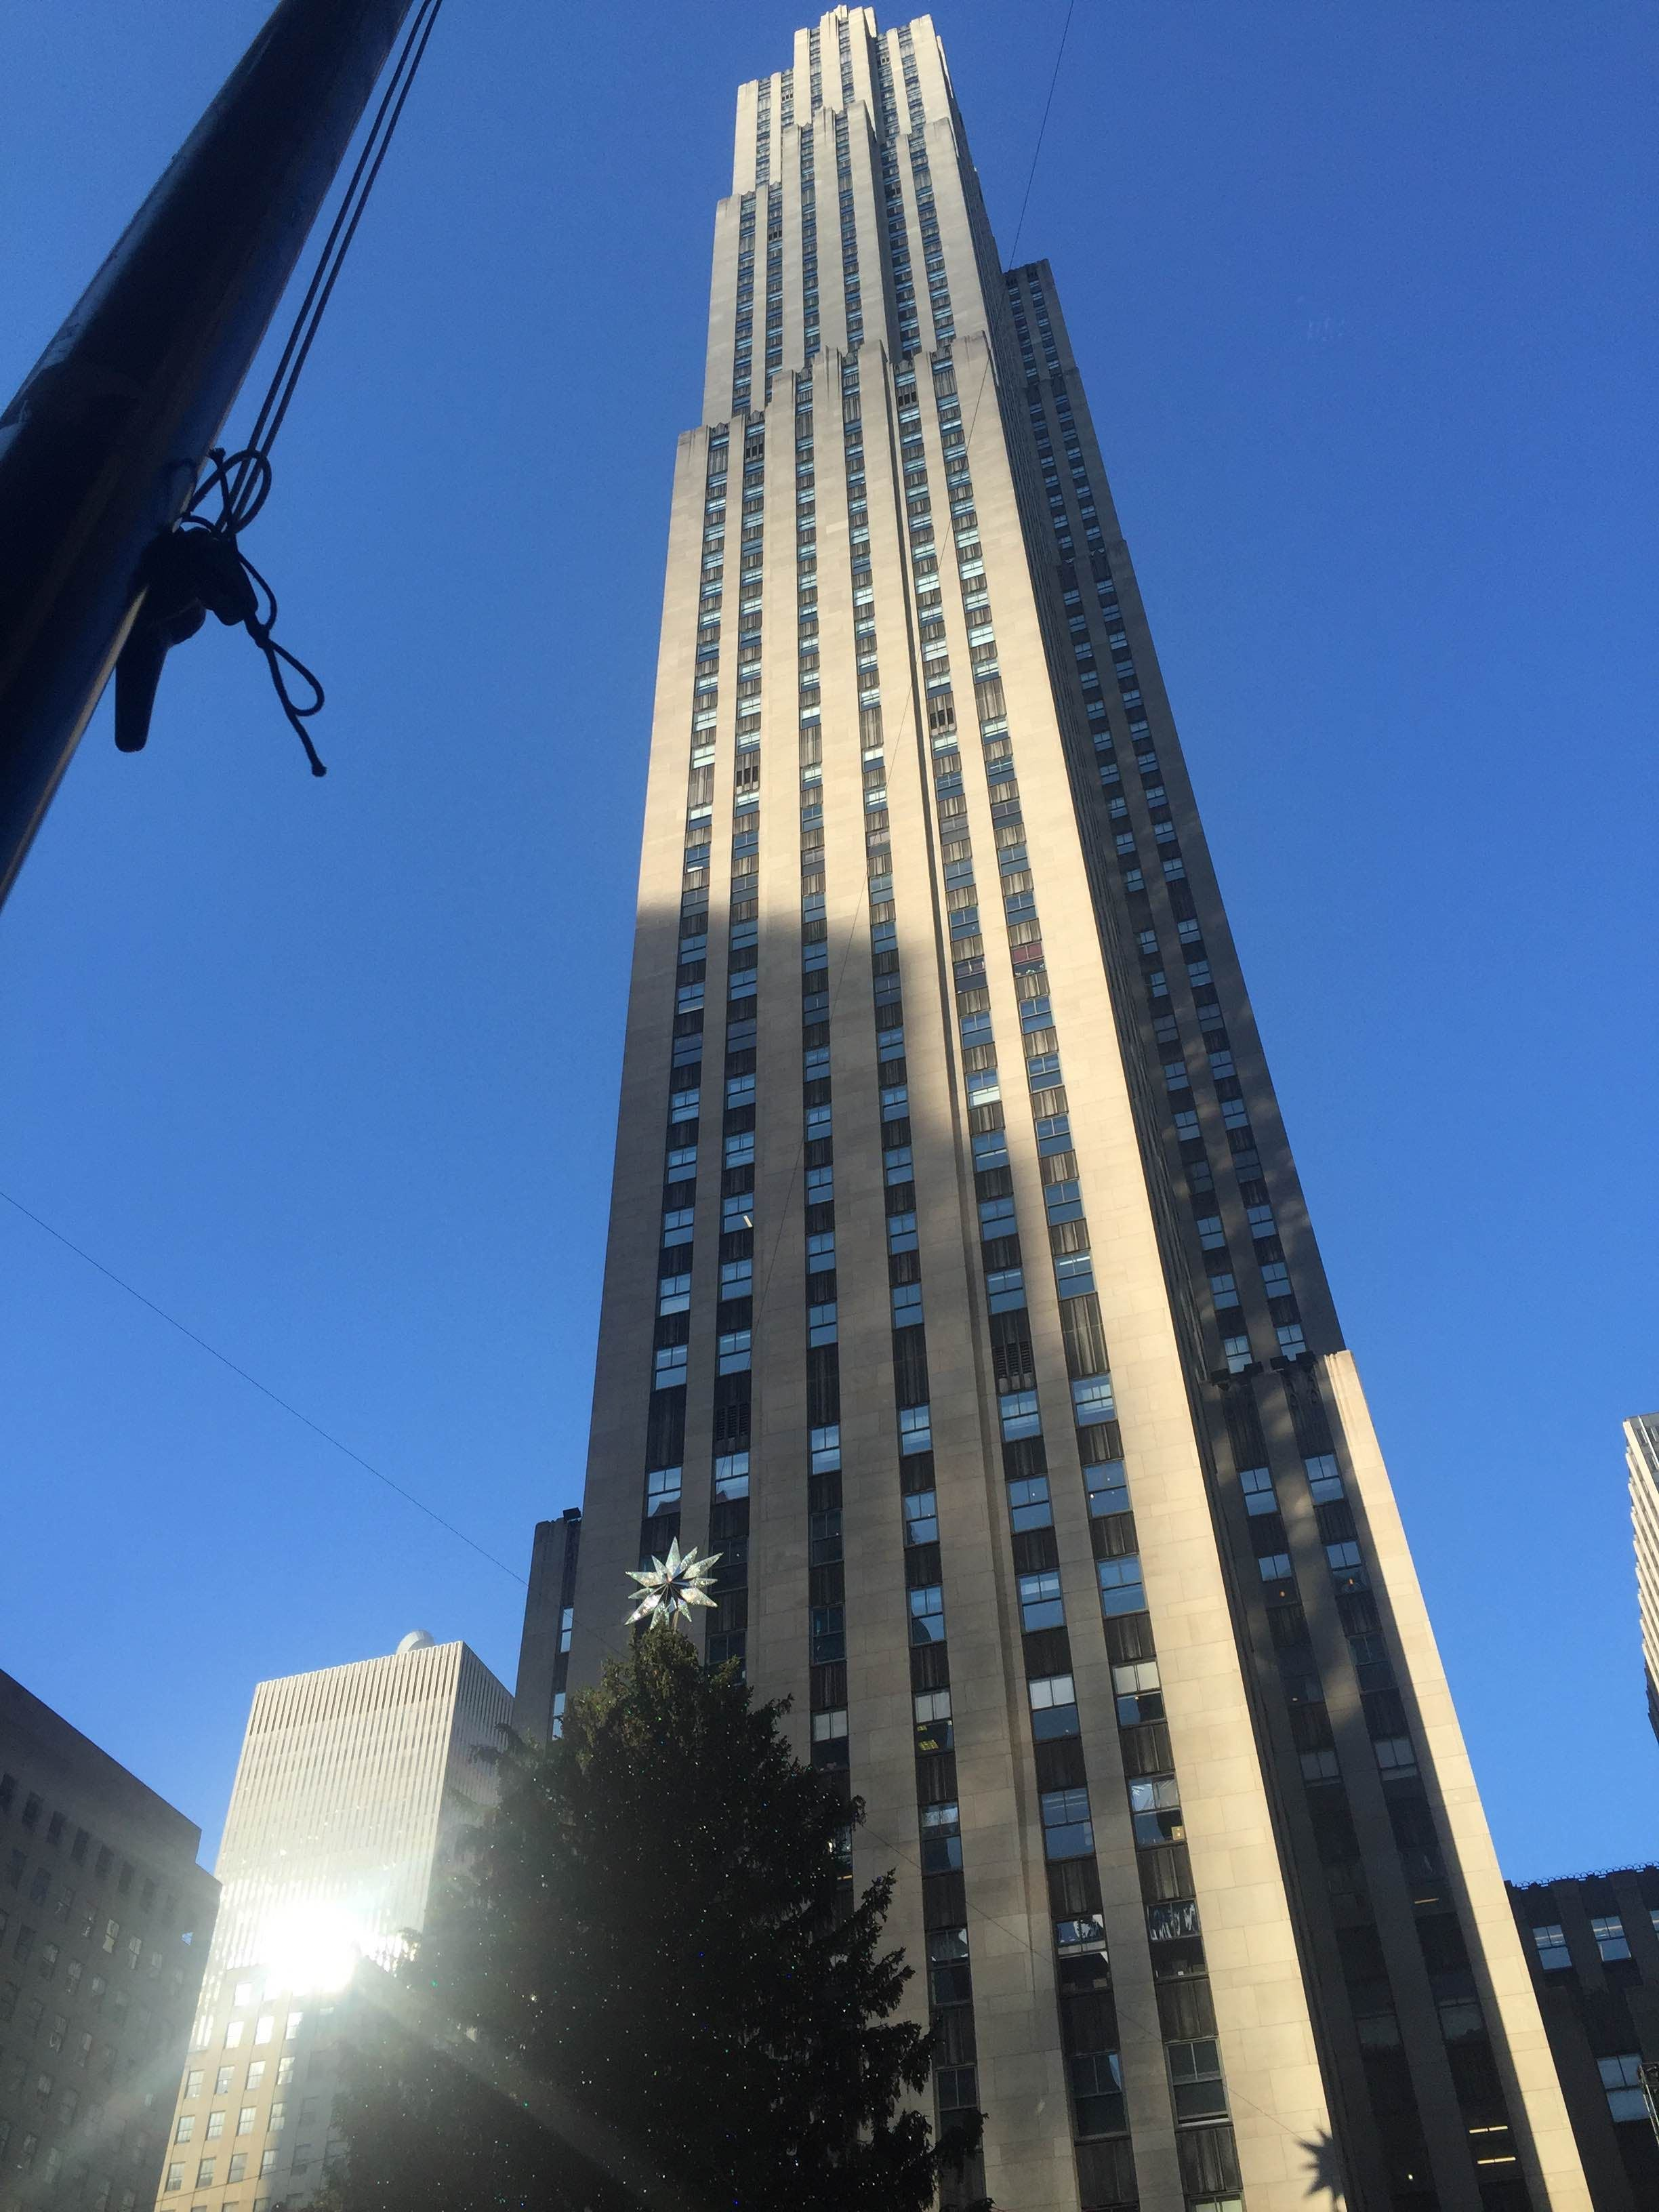 Edificio en Rockefeller Center